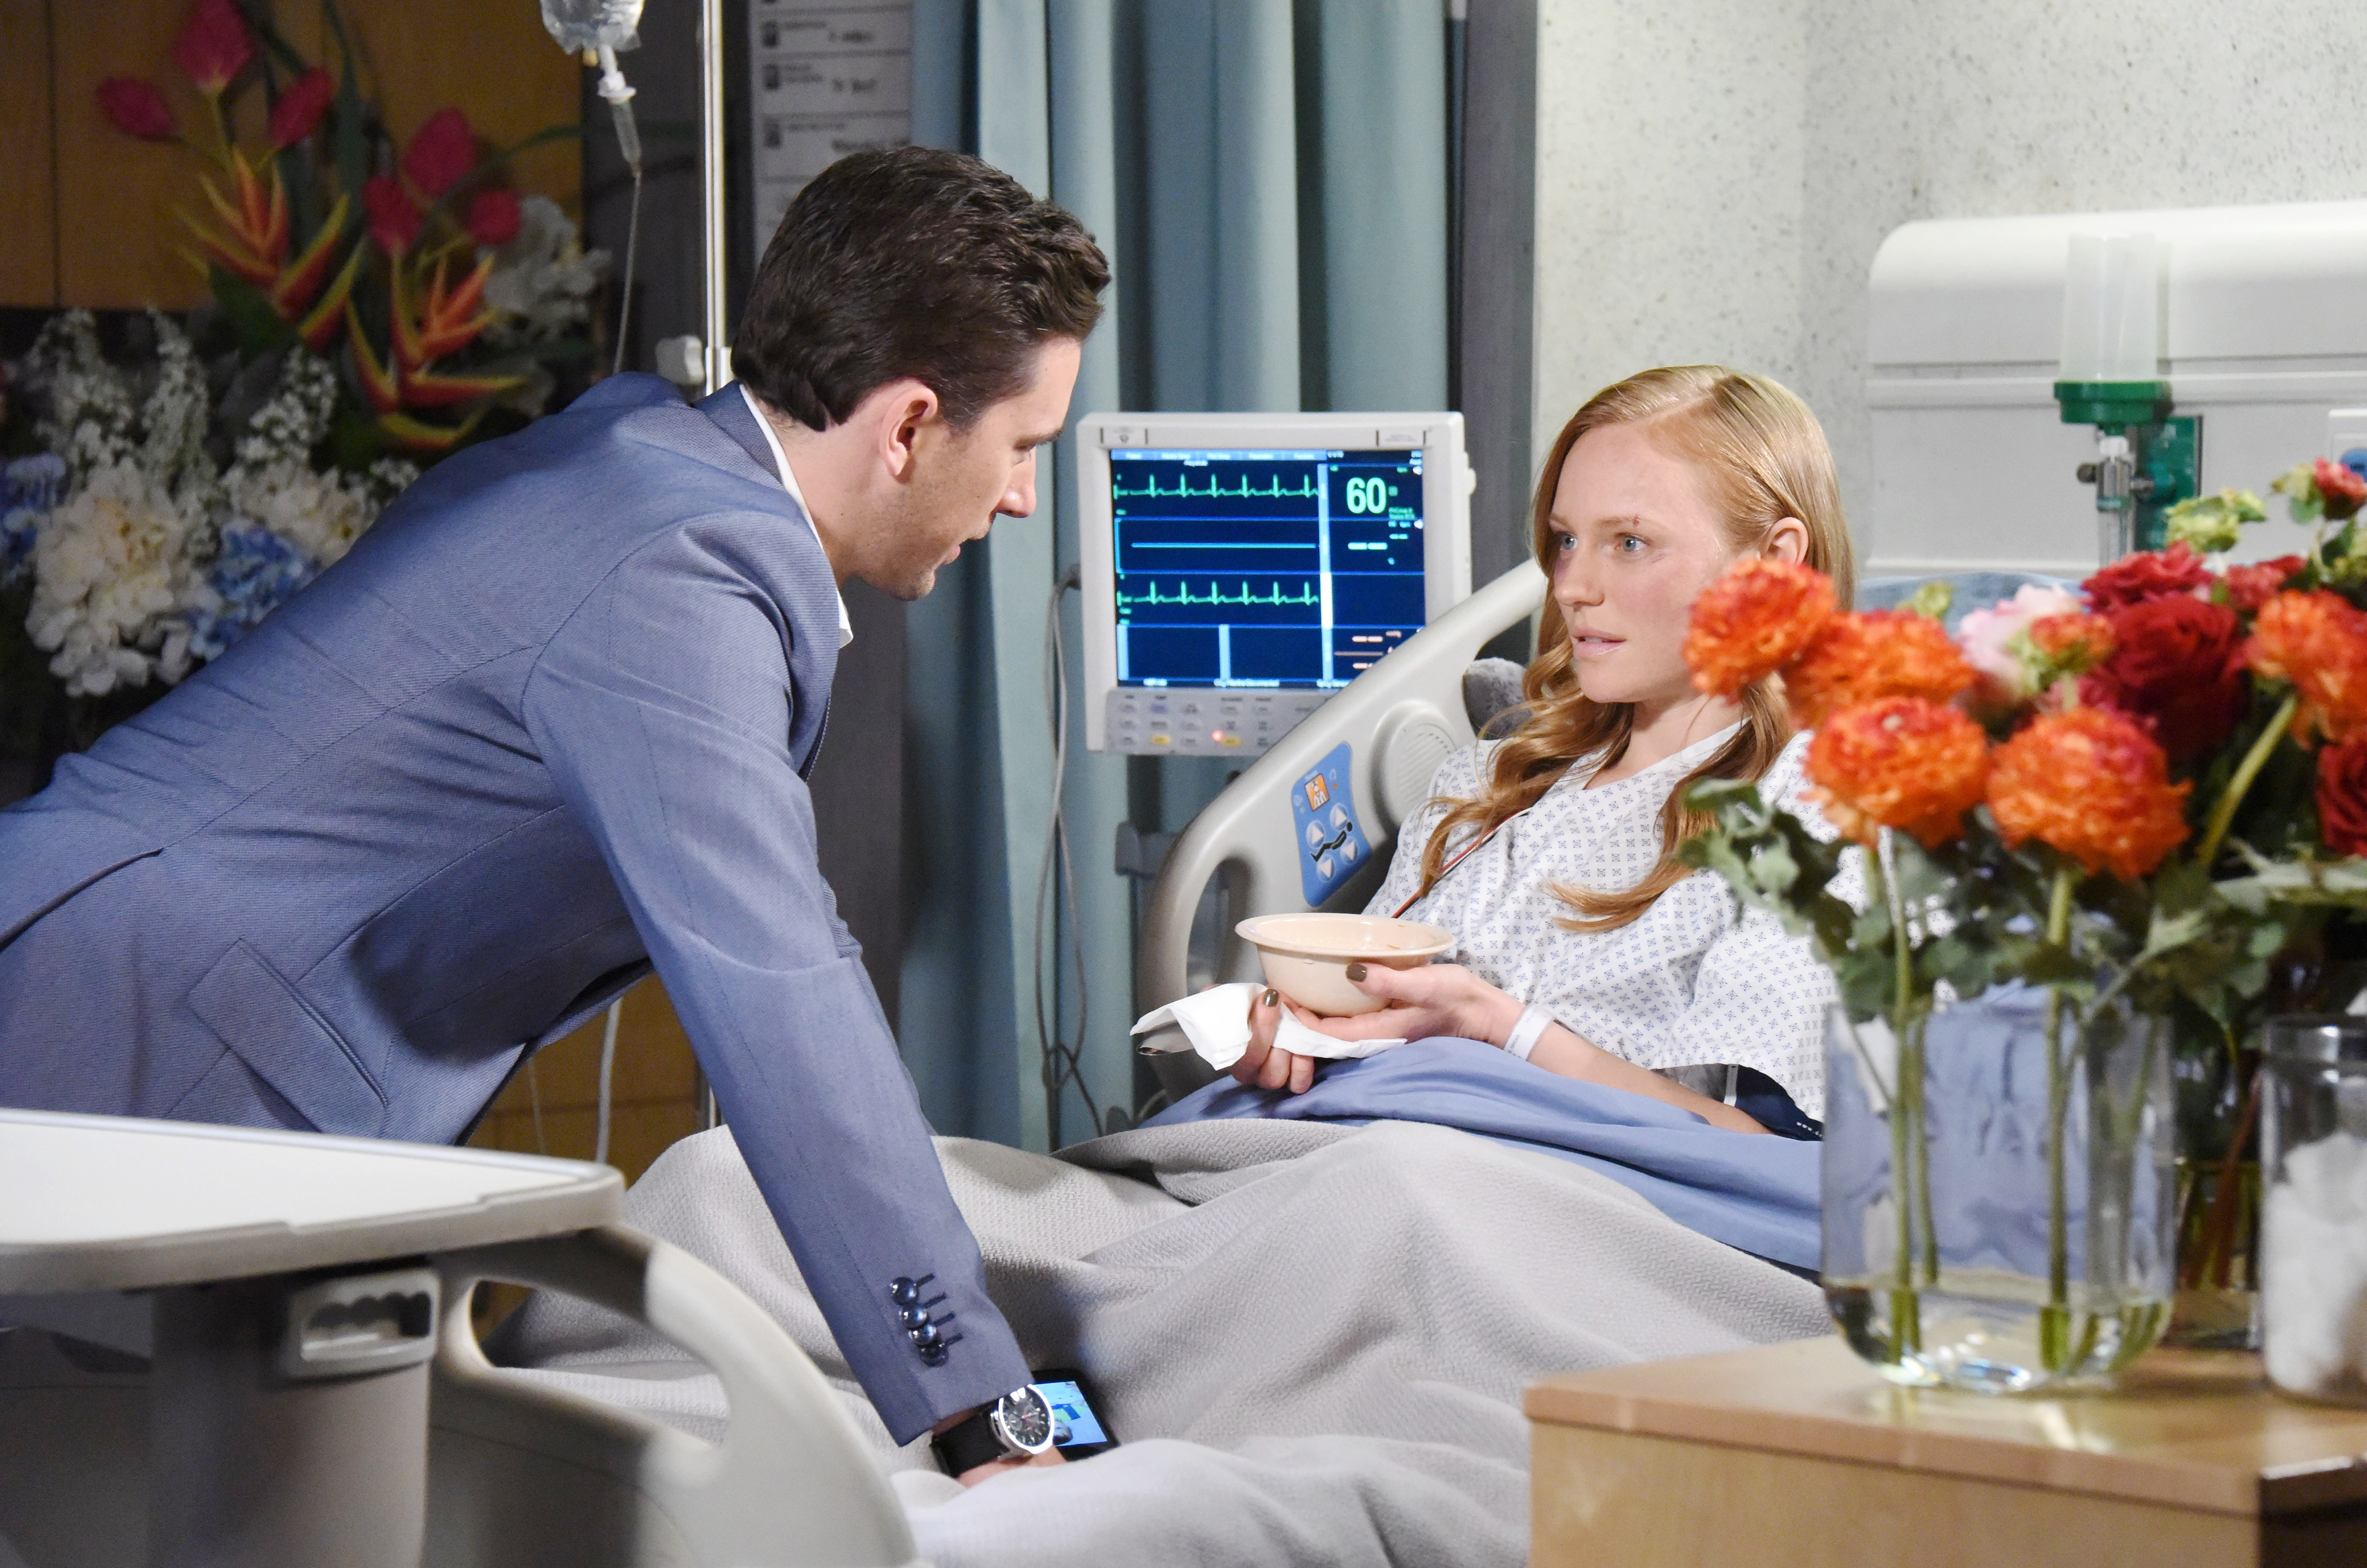 Days of Our Lives Spoilers: Chad and Abigail share their big news with Jennifer and JJ.